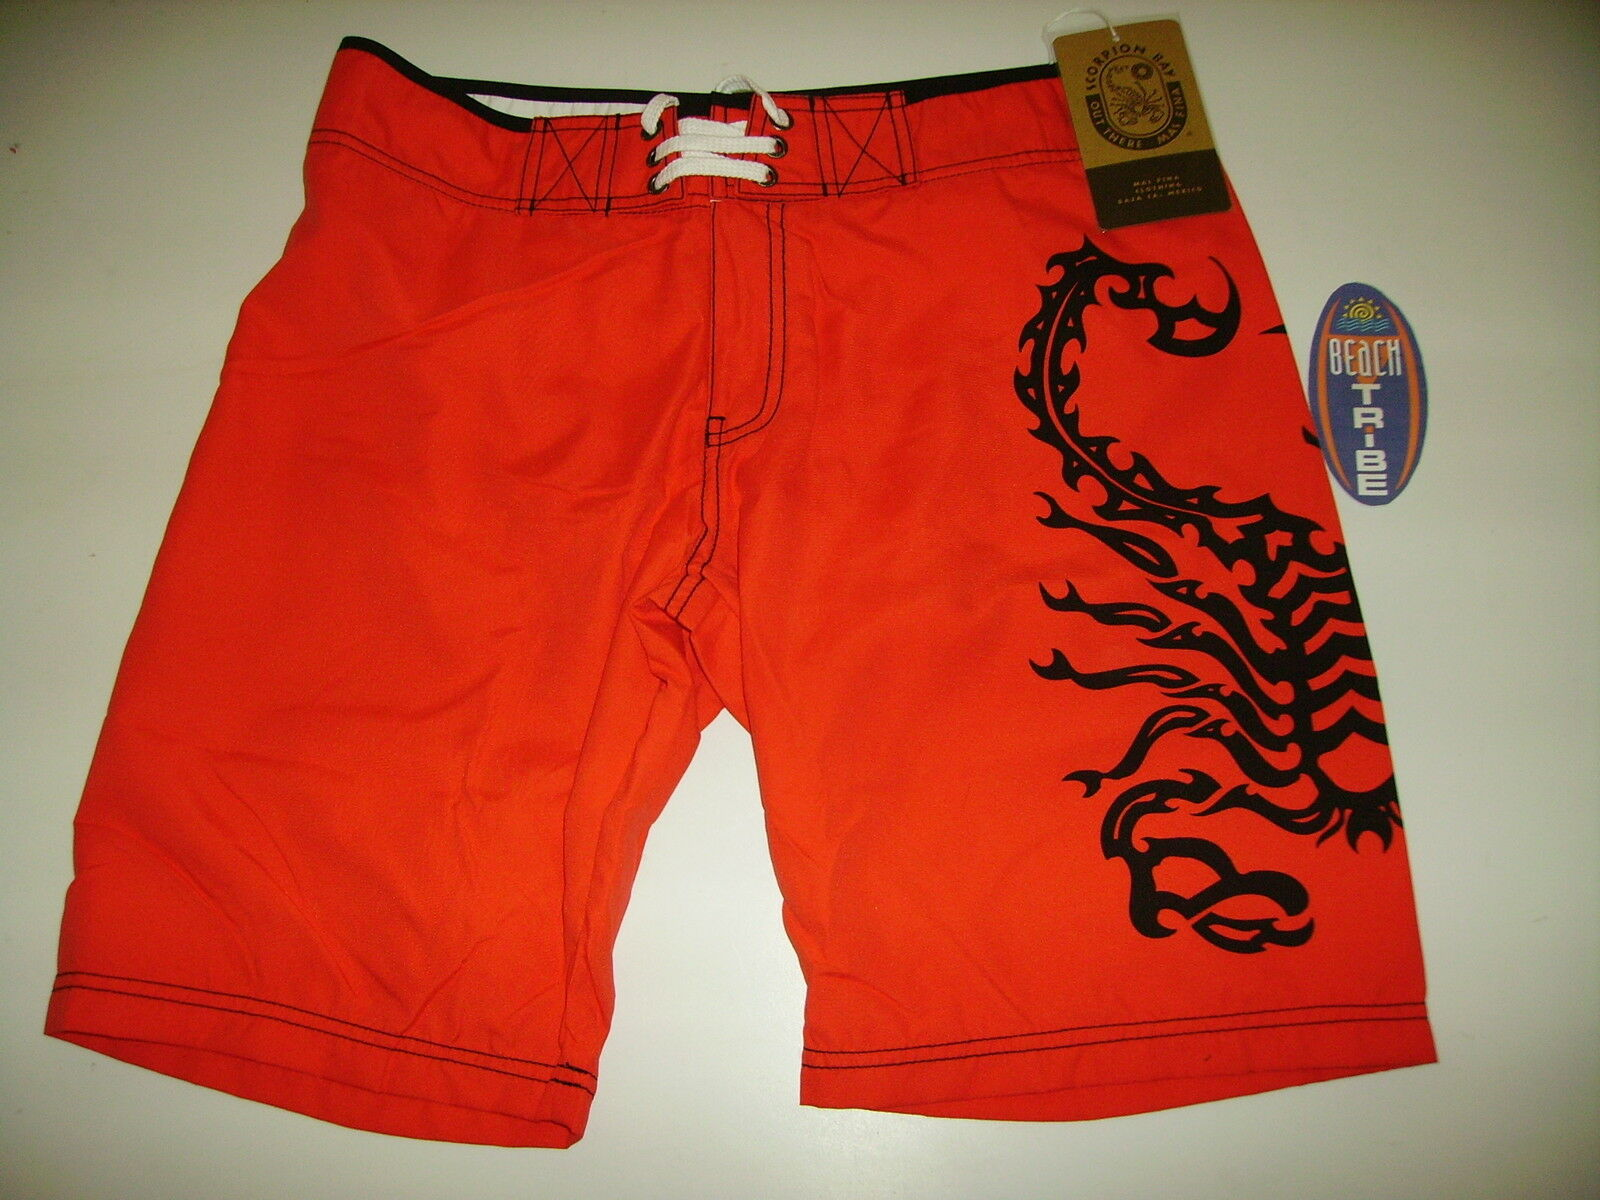 SCORPION BAY BOARDSHORT PANTALONCINO MARE COSTUME MBS2710 RED red 28